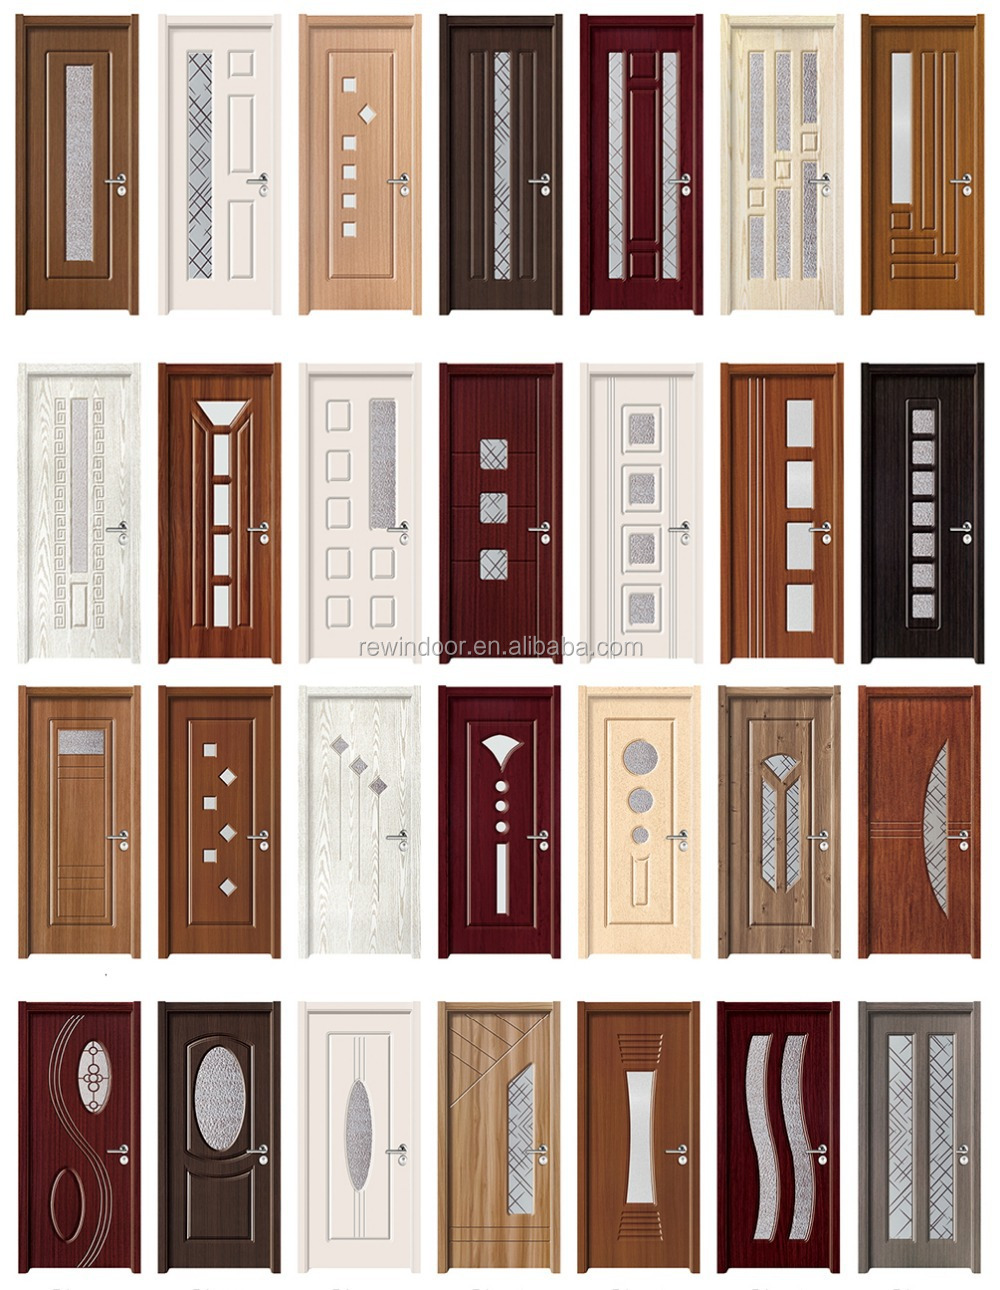 Bathroom pvc doors prices fiber bathroom door teak wood for Bathroom designs doors